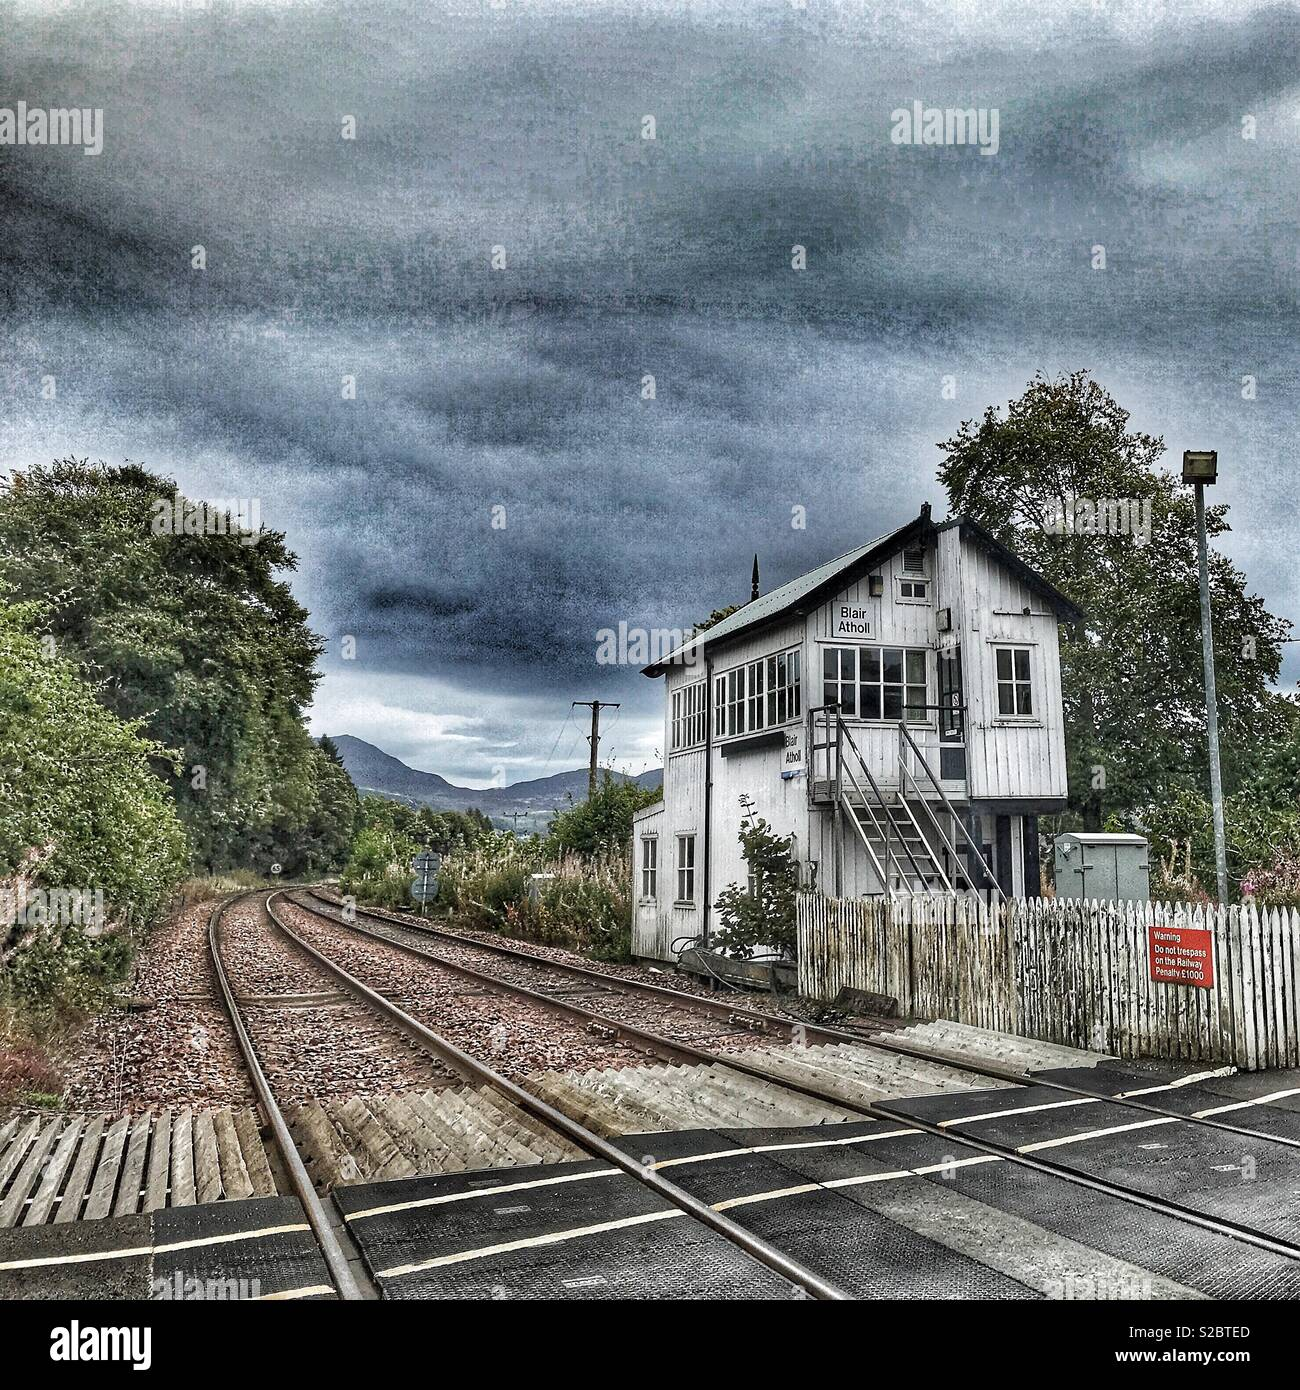 Blair Atholl train station, railway crossing, rail tracks and road, Perthshire, Scotland - Stock Image